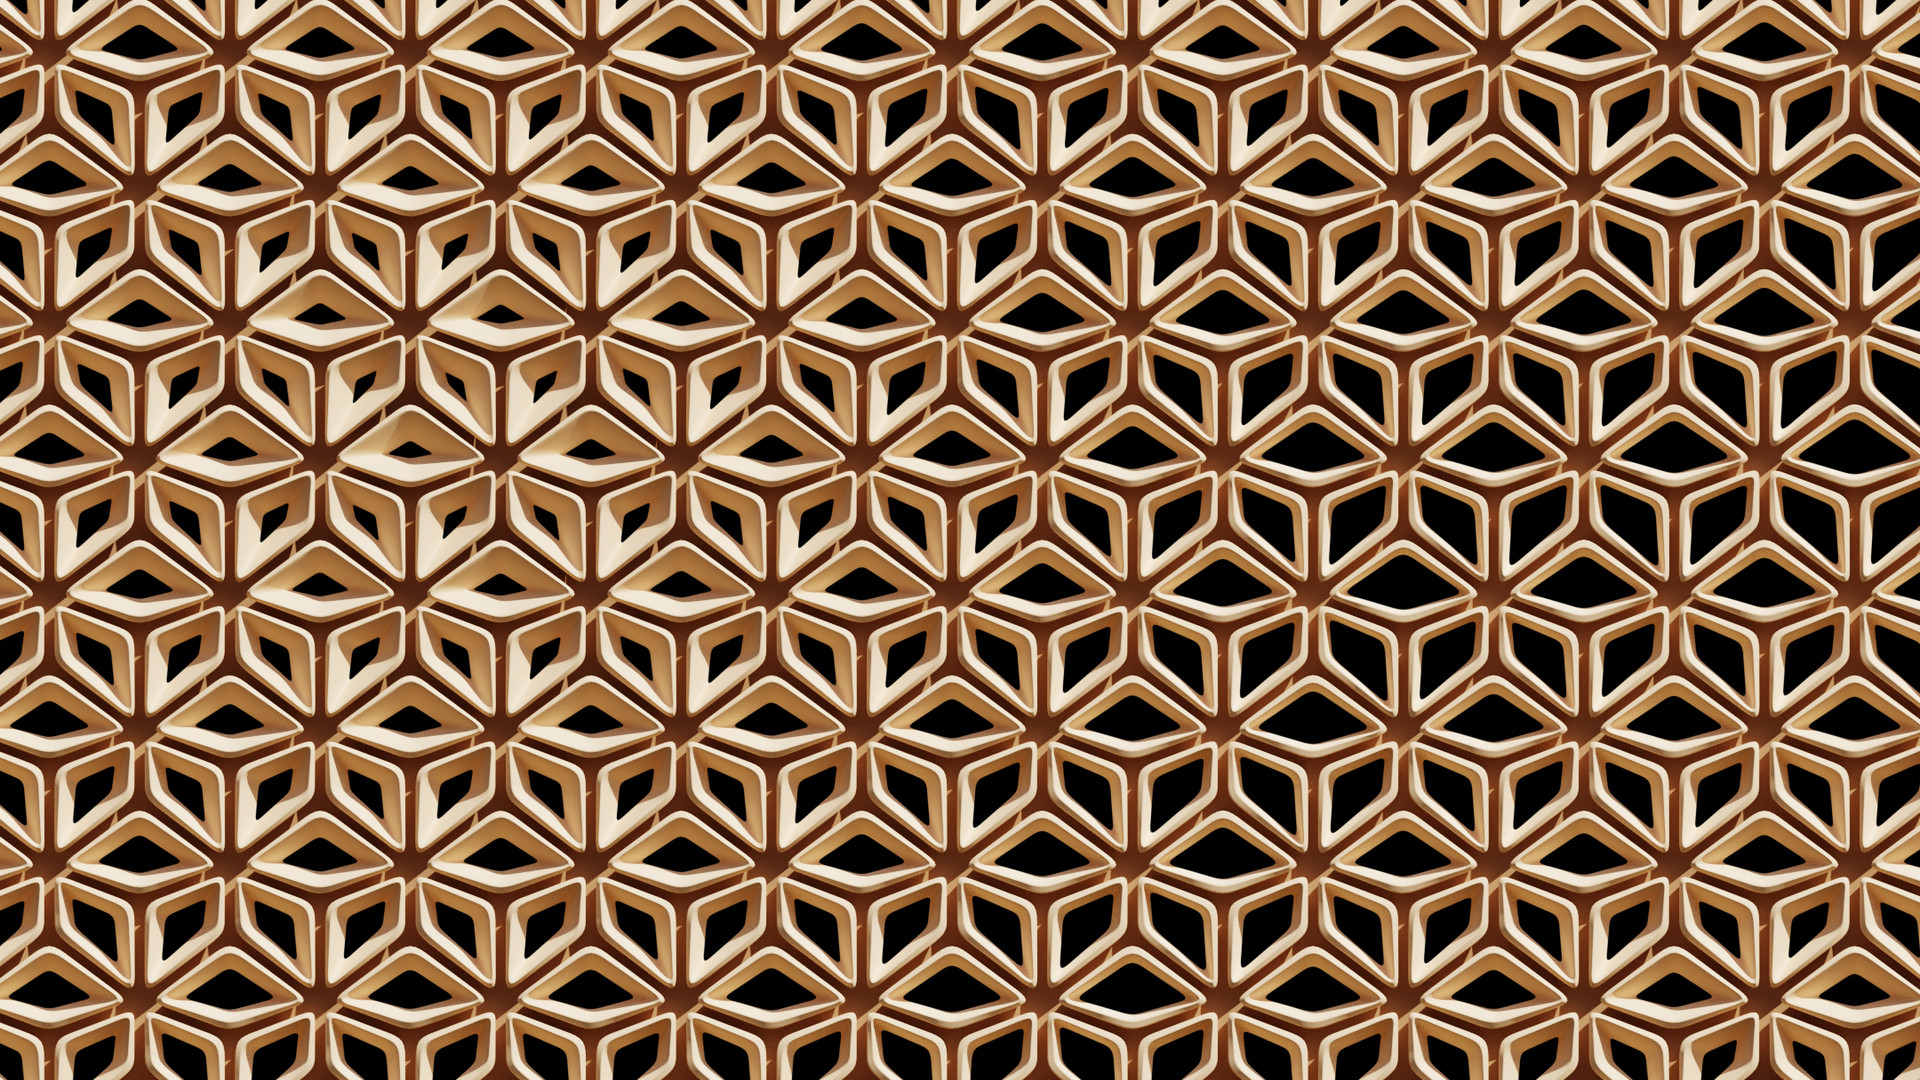 Hexagon Tile Wall Pattern